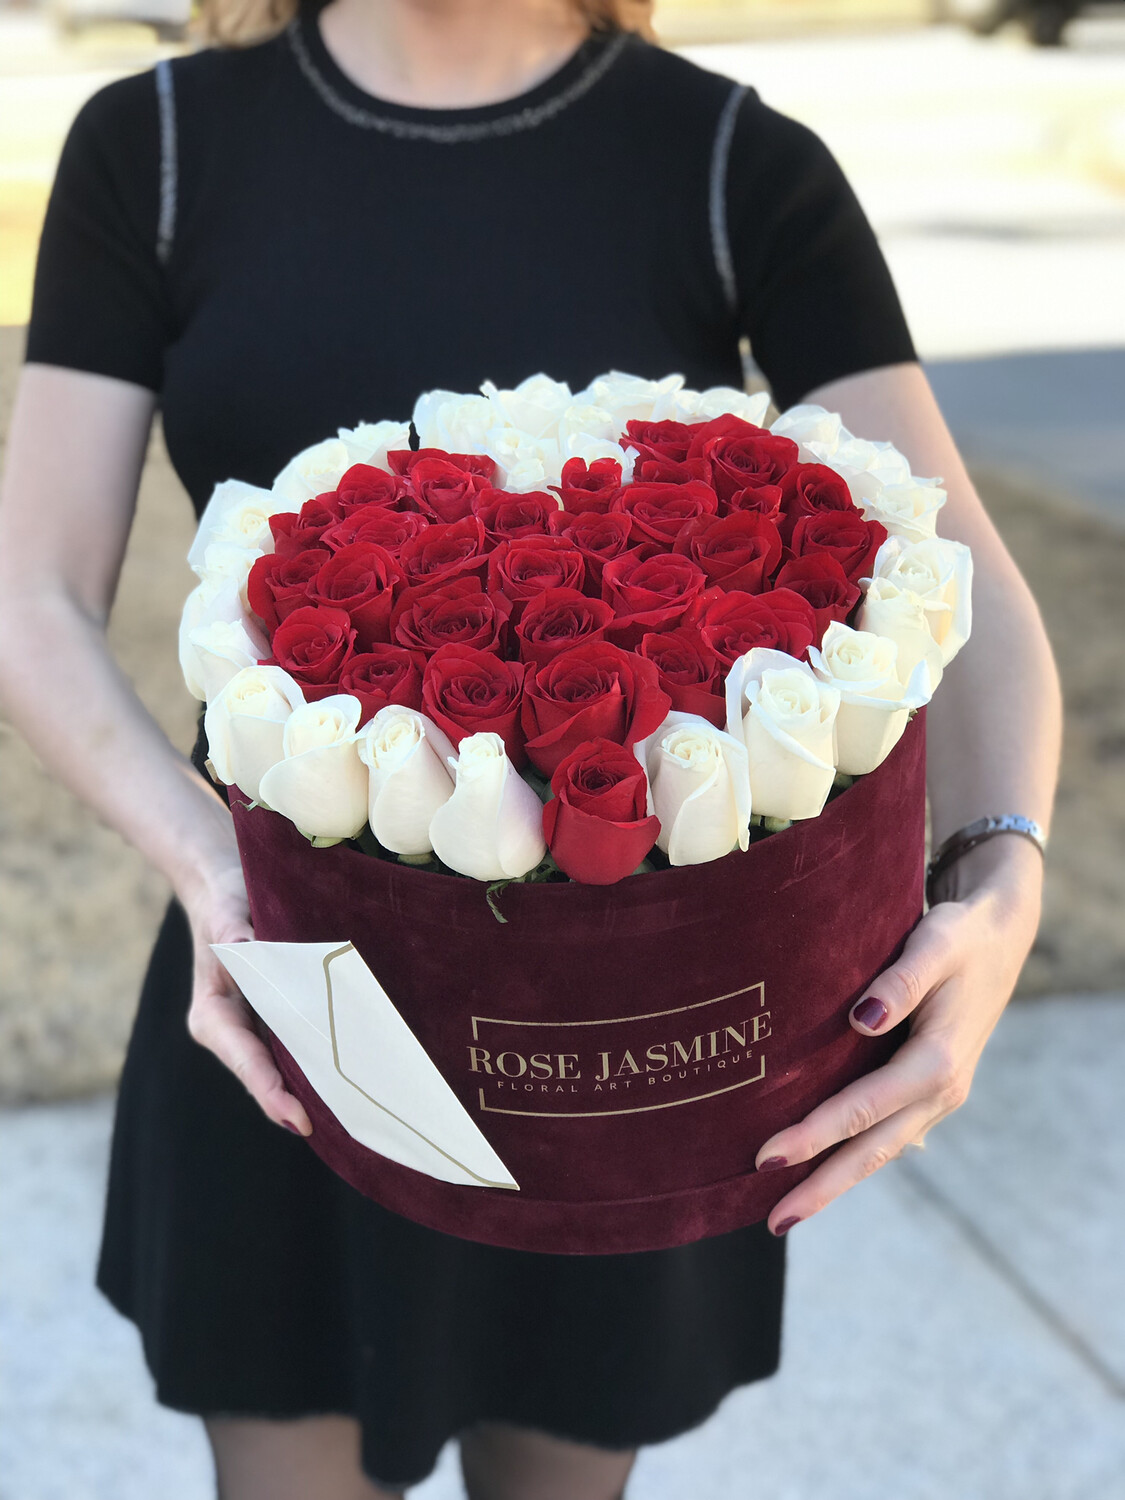 Rose Jasmine 2021 Valentine's Day Collection